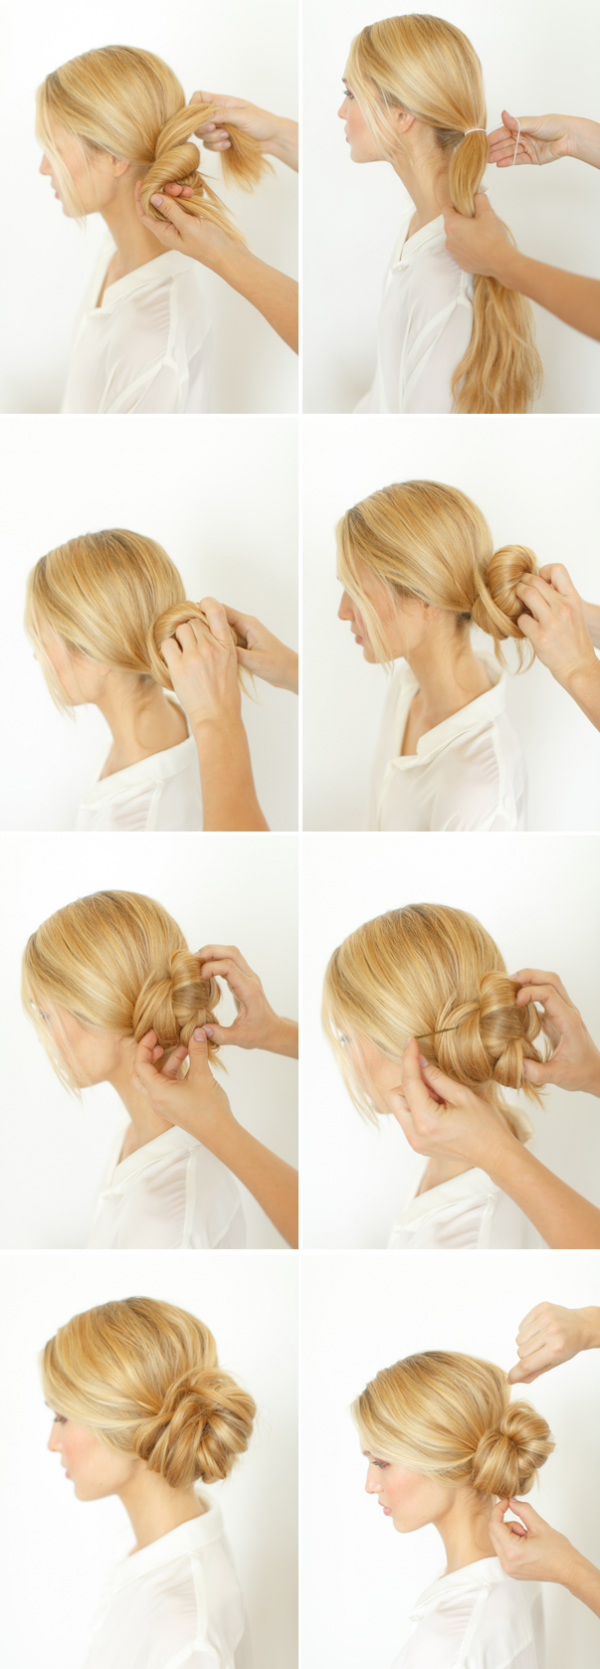 Diy Knotted Bun Wedding Hairstyle (View 17 of 20)